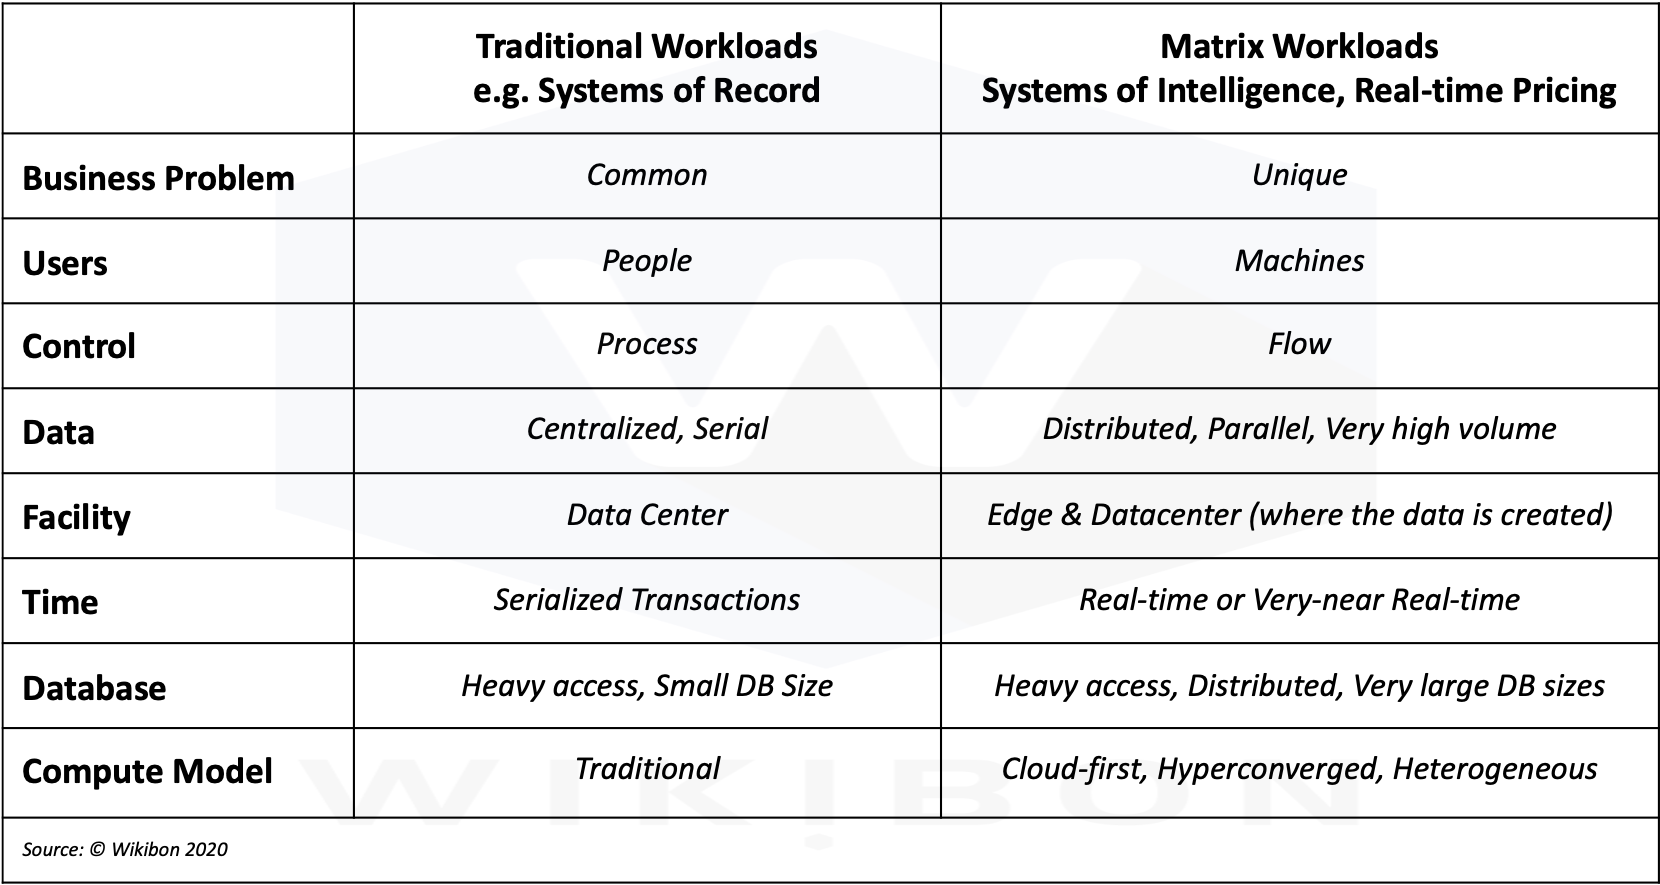 Matrix vs. Traditional Workloads